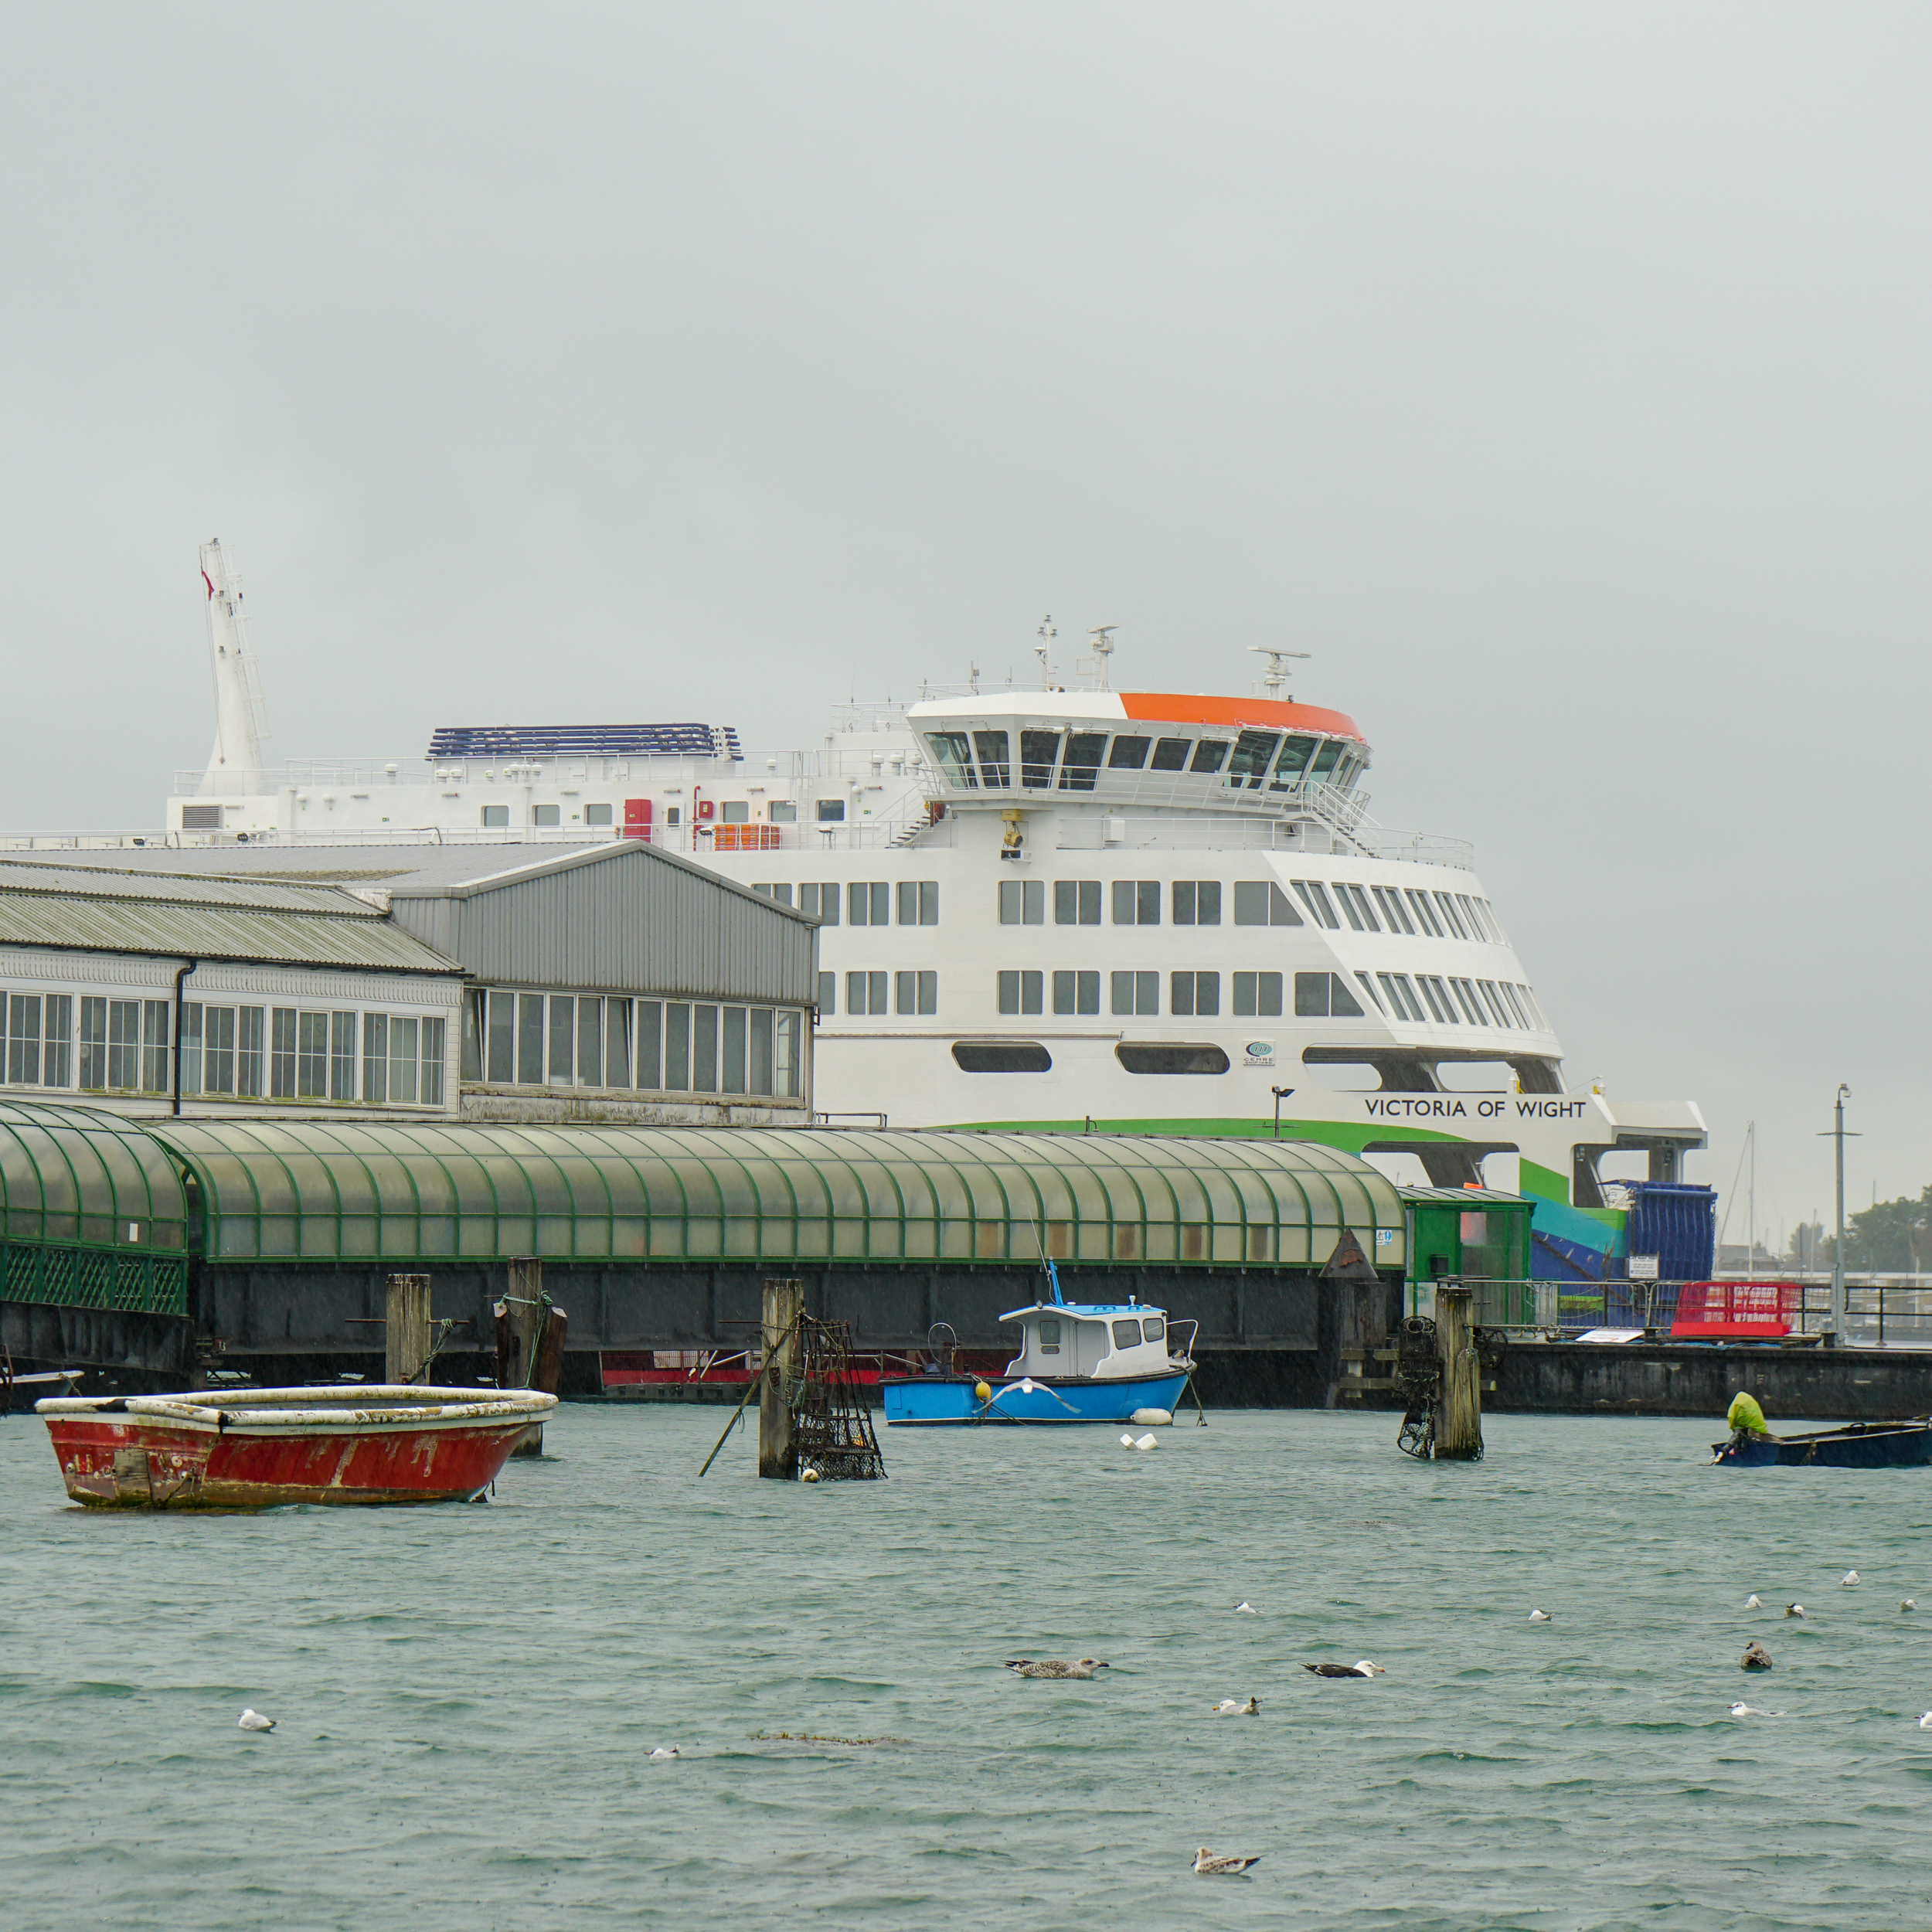 victoria of wight in portsmouth